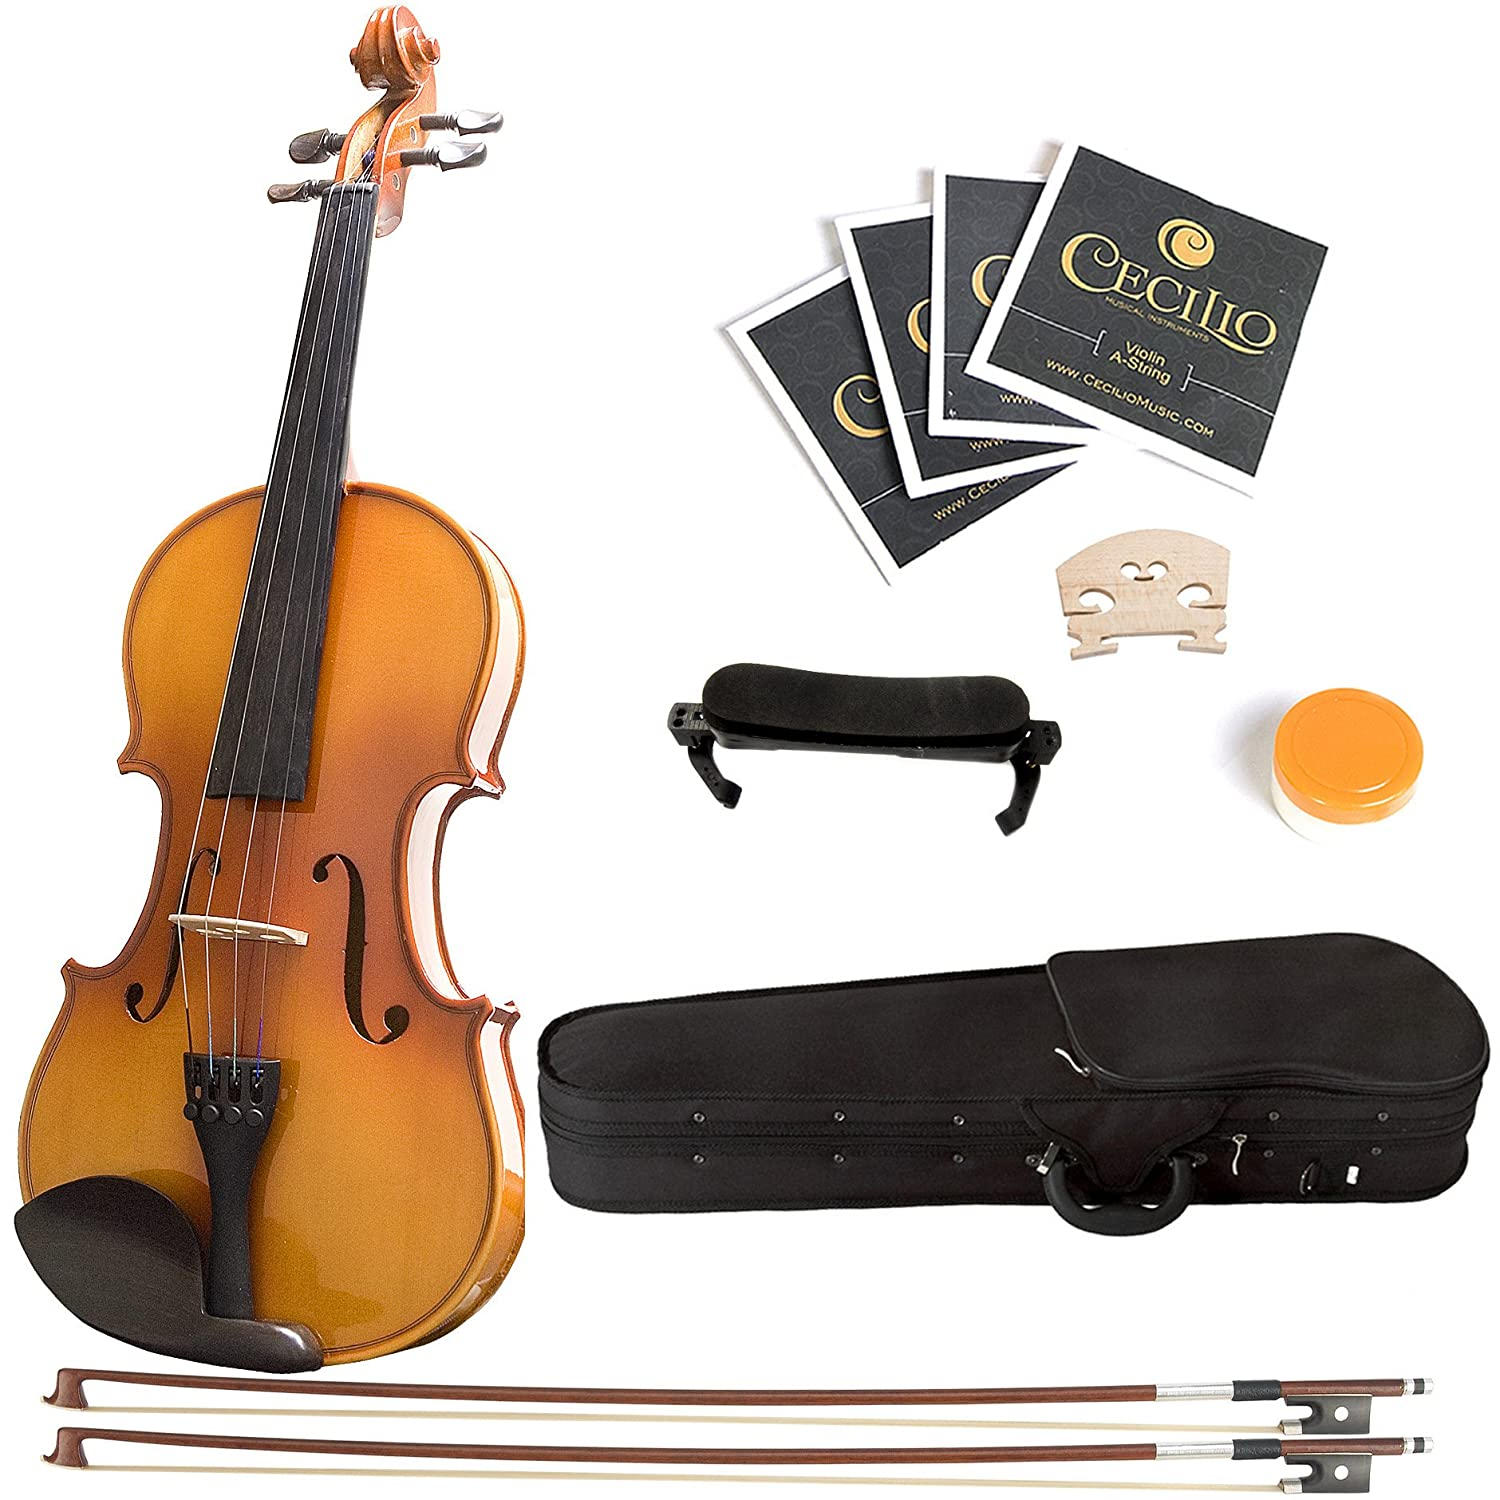 Mendini 1/4 MV400 Ebony Fitted Solid Wood Violin with Hard Case, Shoulder Rest, 2-Bows, Rosin, Extra Bridge and Strings 1/4MV400 1/4MV400+SR